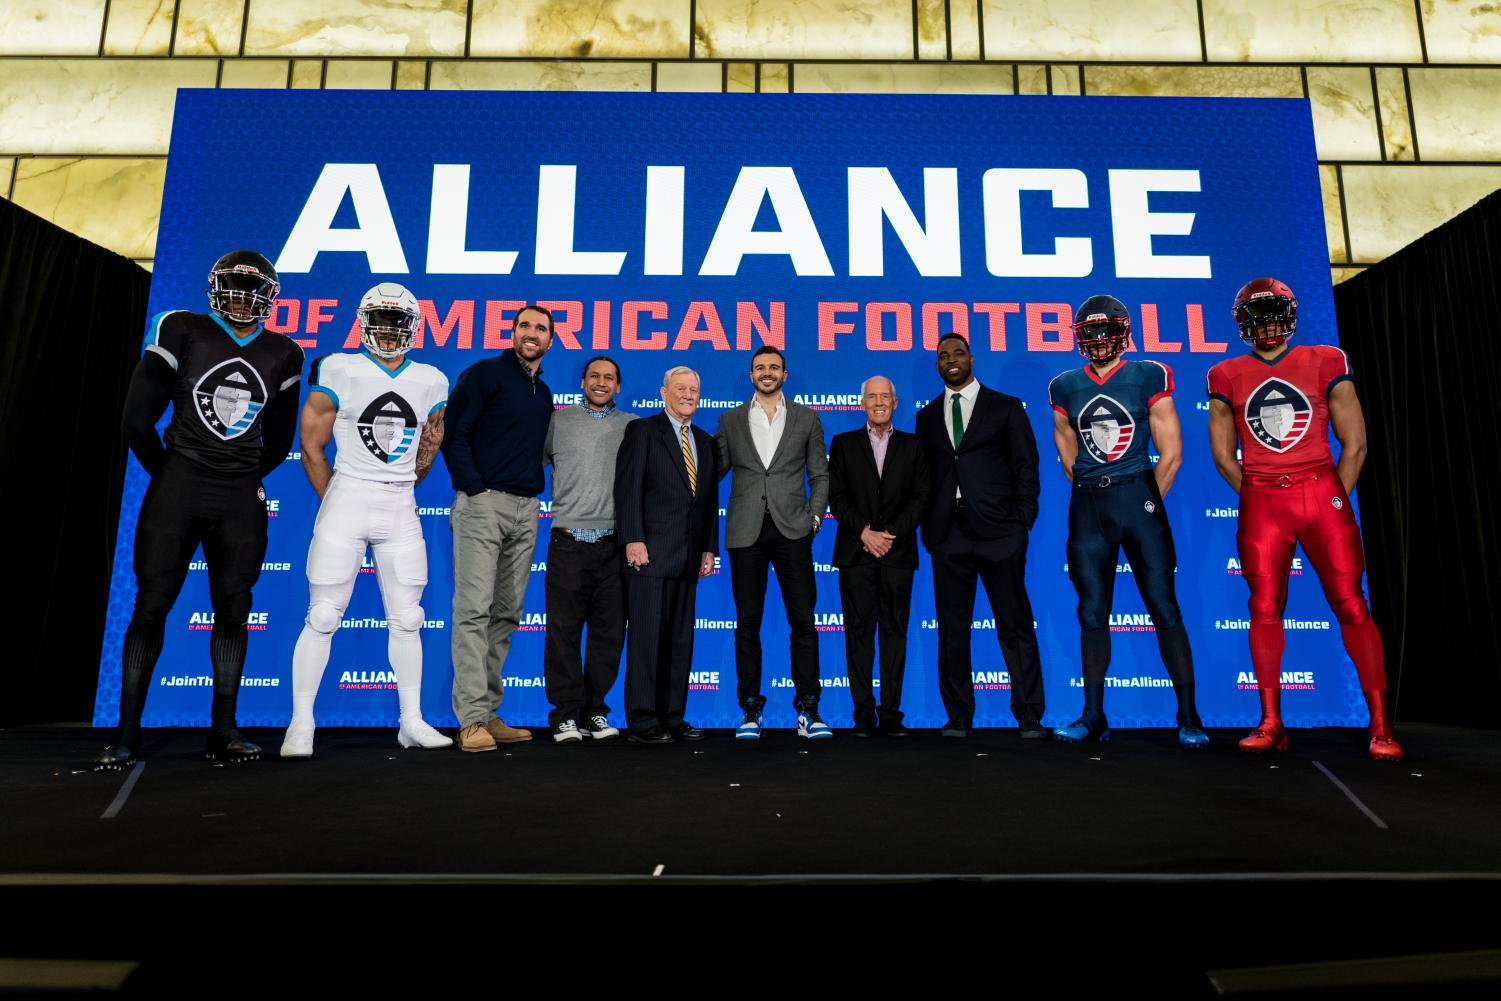 Founders and members of the Alliance of American Football pose for the press.